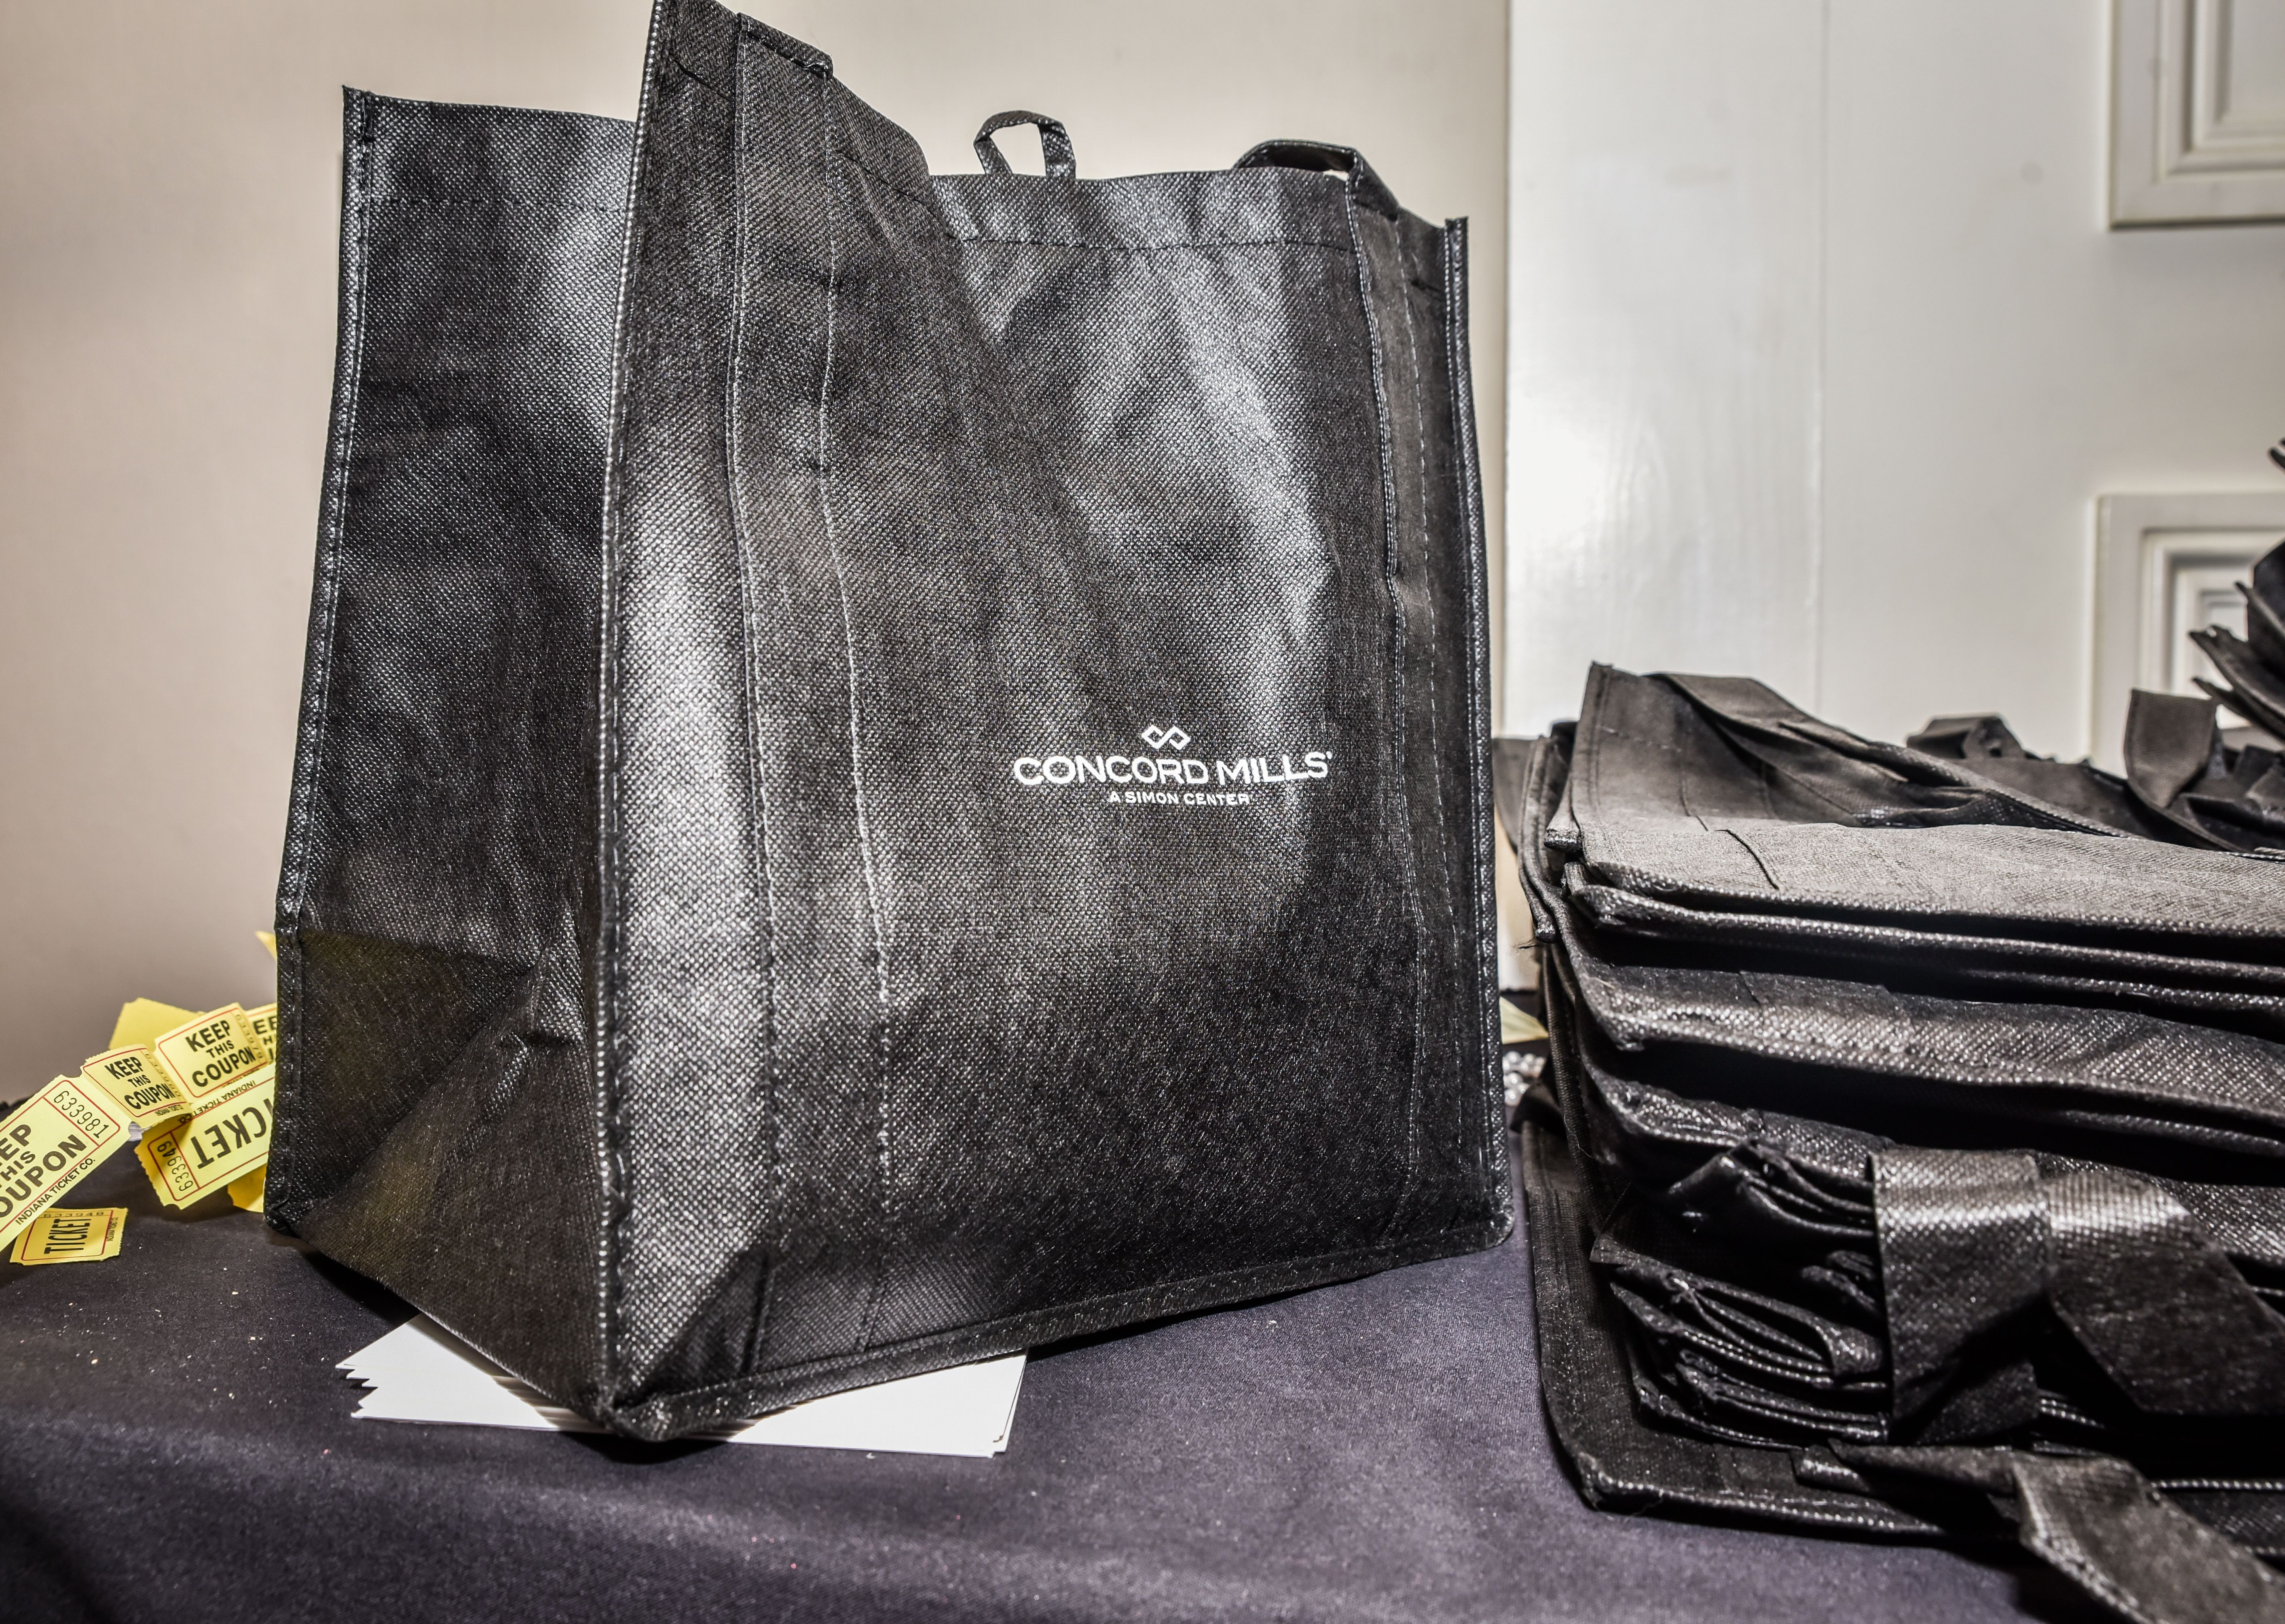 Concord Mills Bags